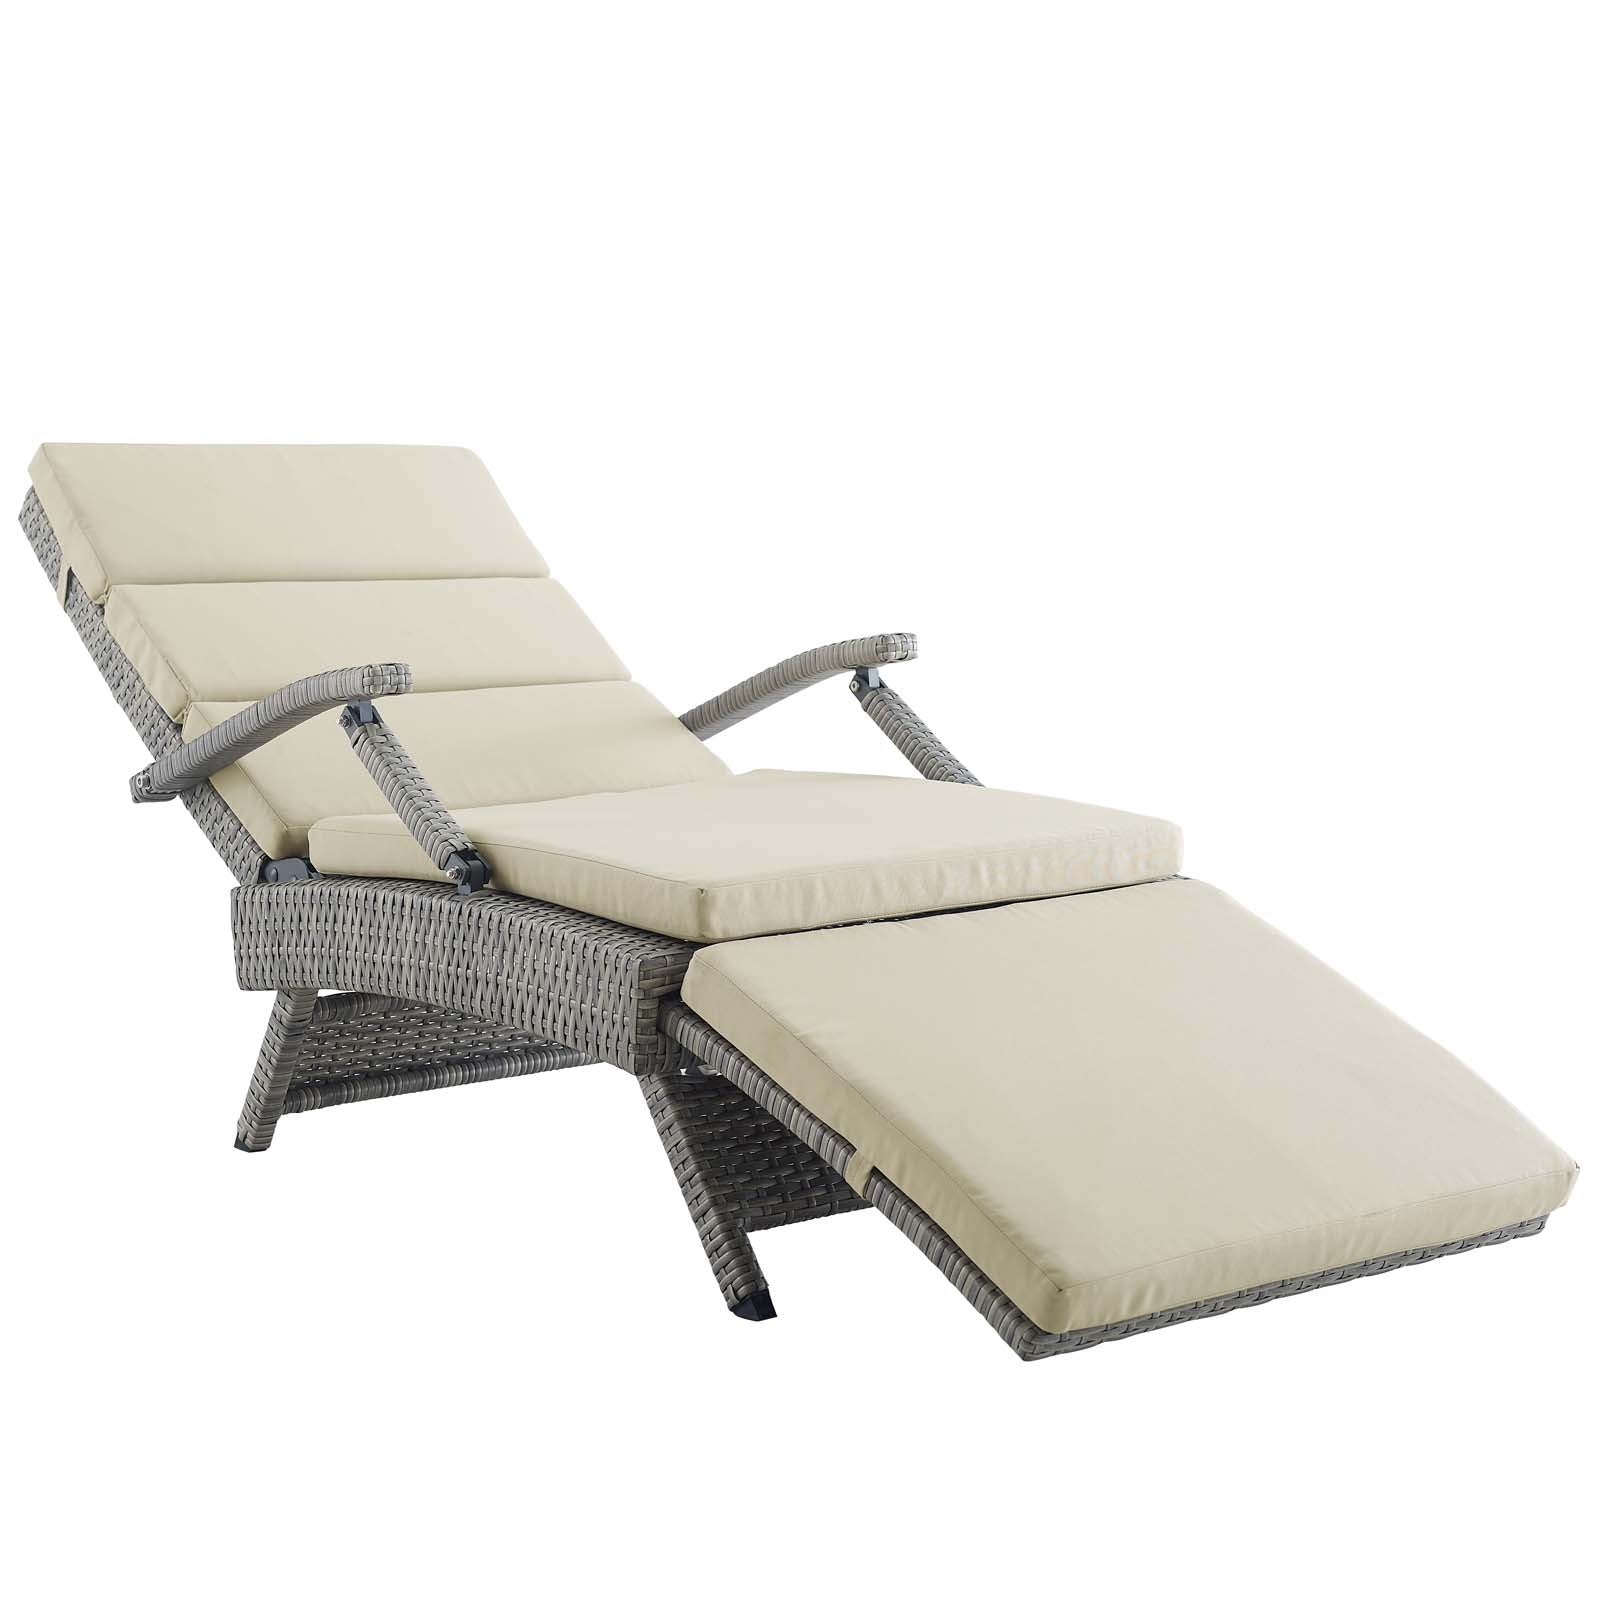 Super Modway Outdoor Lounge Chairs On Sale Eei 2301 Lgr Bei Envisage Chaise Outdoor Patio Wicker Rattan Lounge Chair Only Only 395 80 At Contemporary Alphanode Cool Chair Designs And Ideas Alphanodeonline